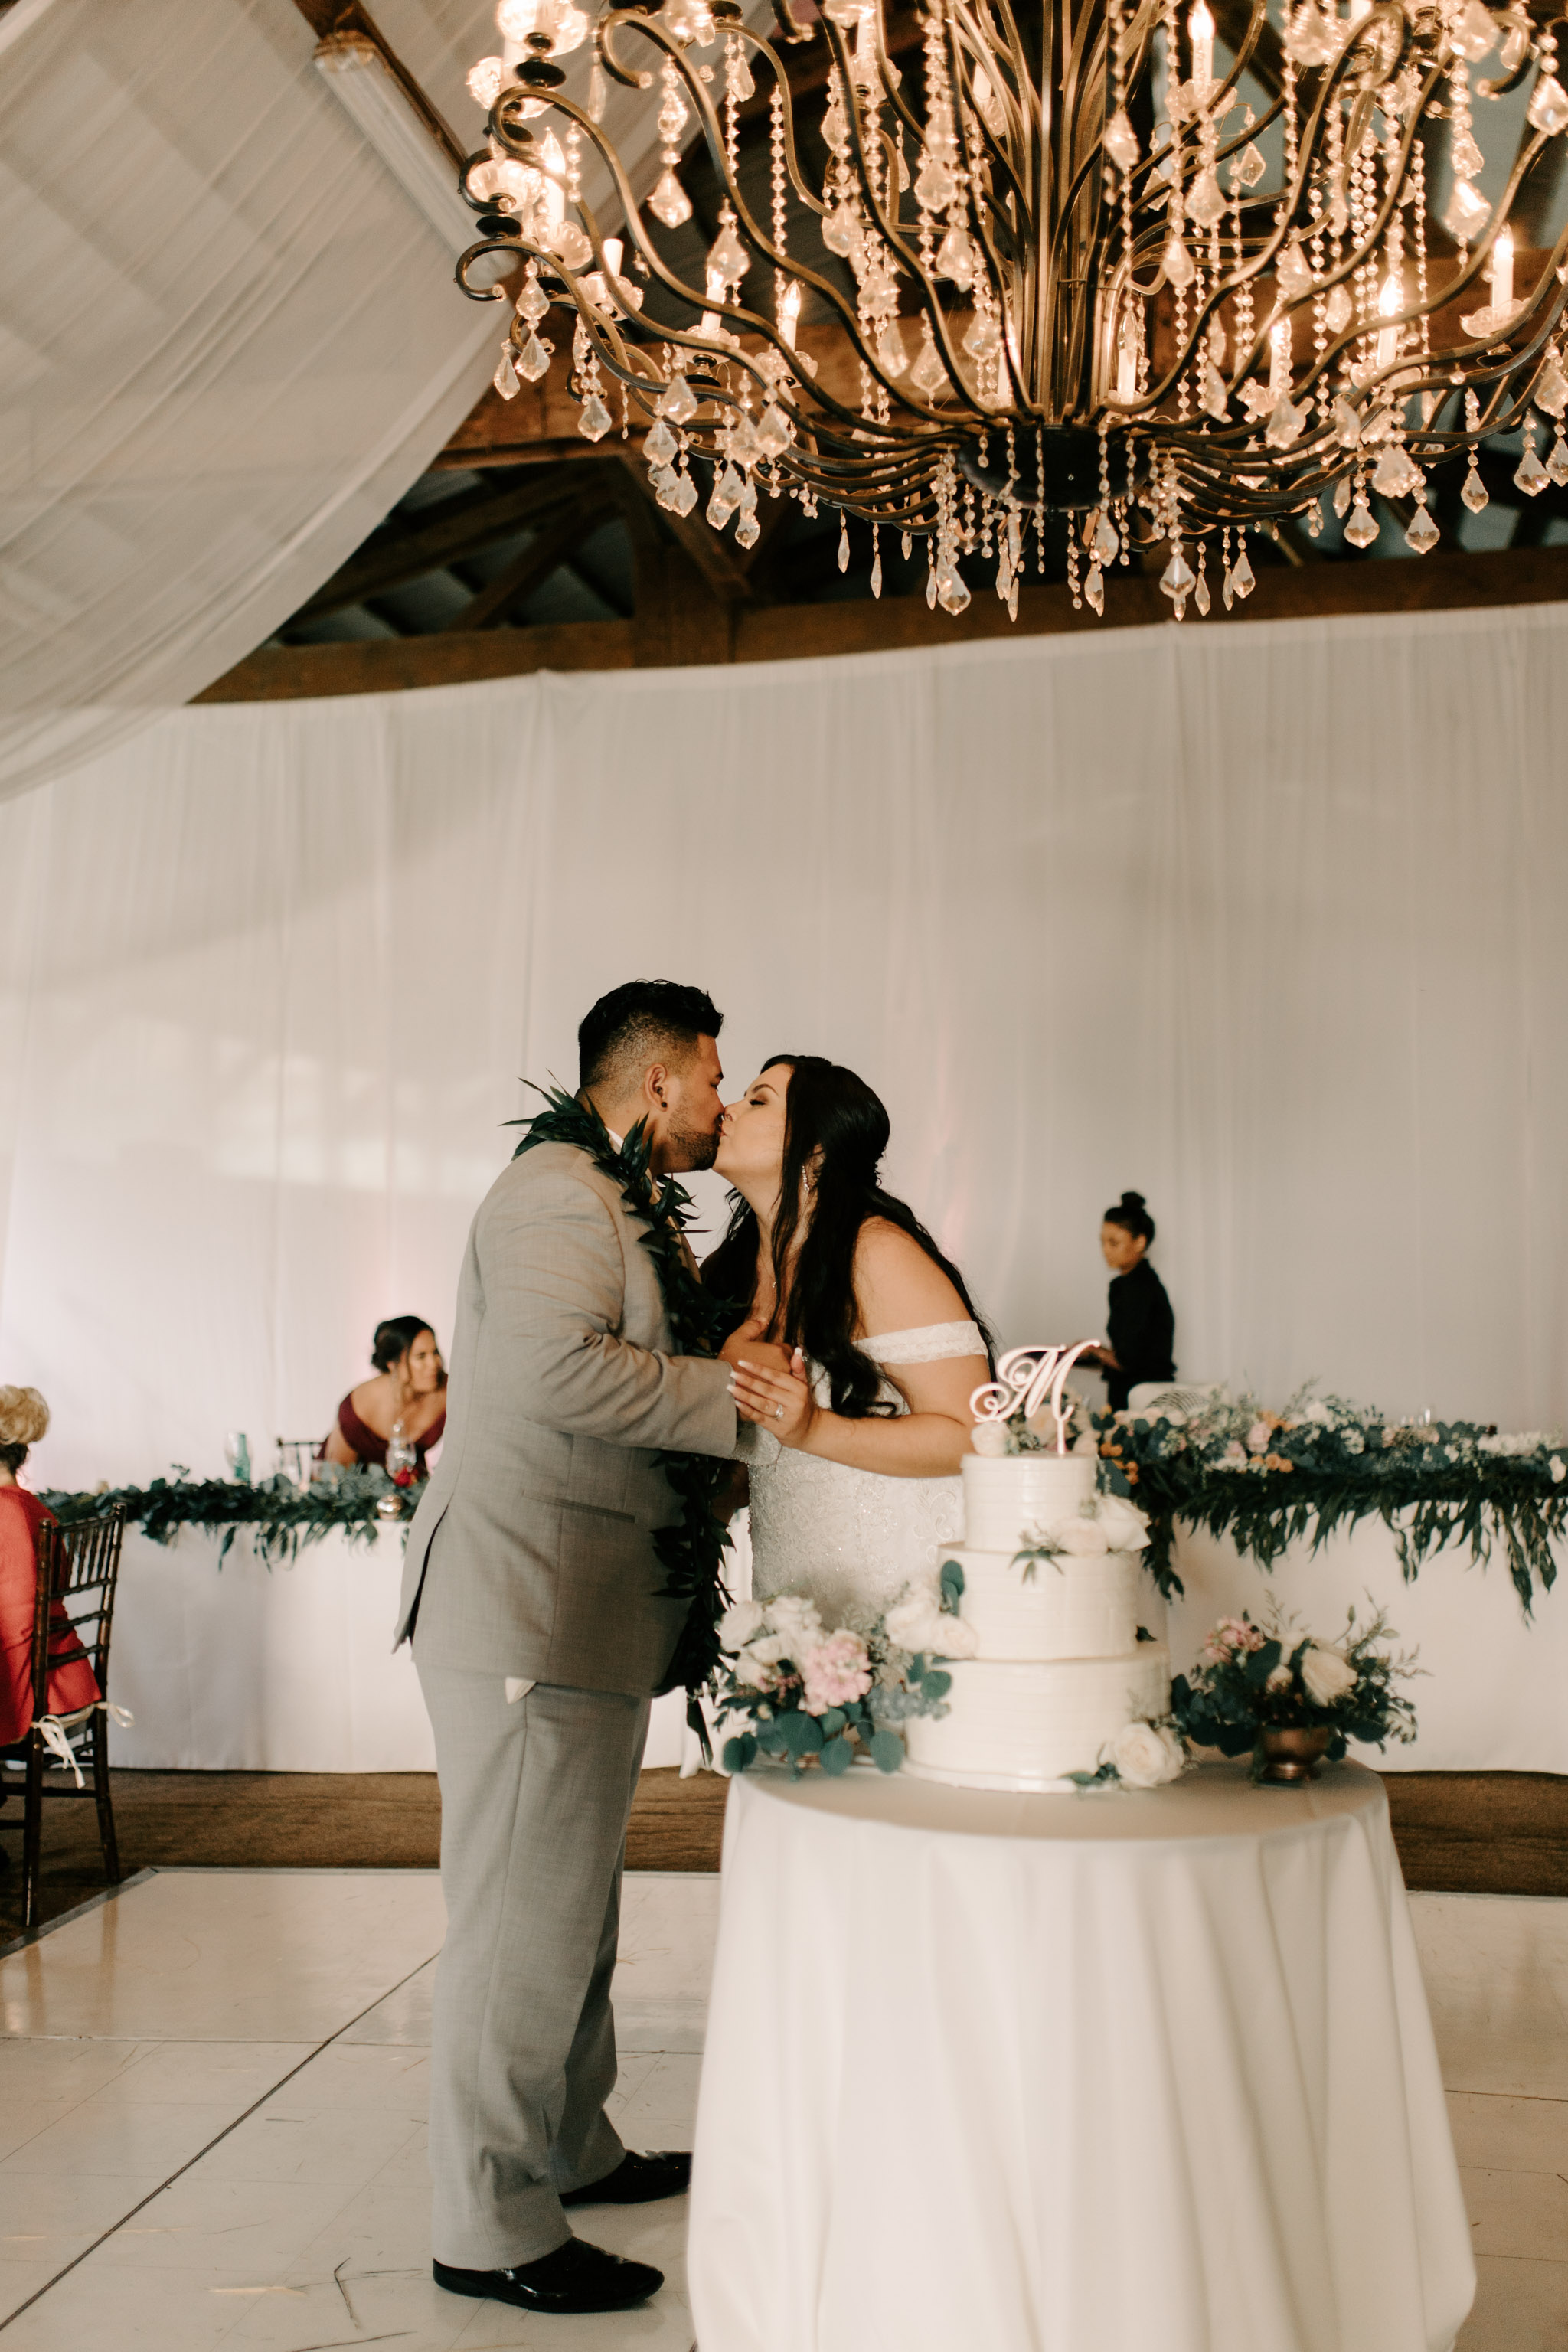 Bride and Groom Cake Cutting - Hawaii Barn Wedding Reception - Sunset Ranch Hawaii Wedding By Oahu Wedding Photographer Desiree Leilani